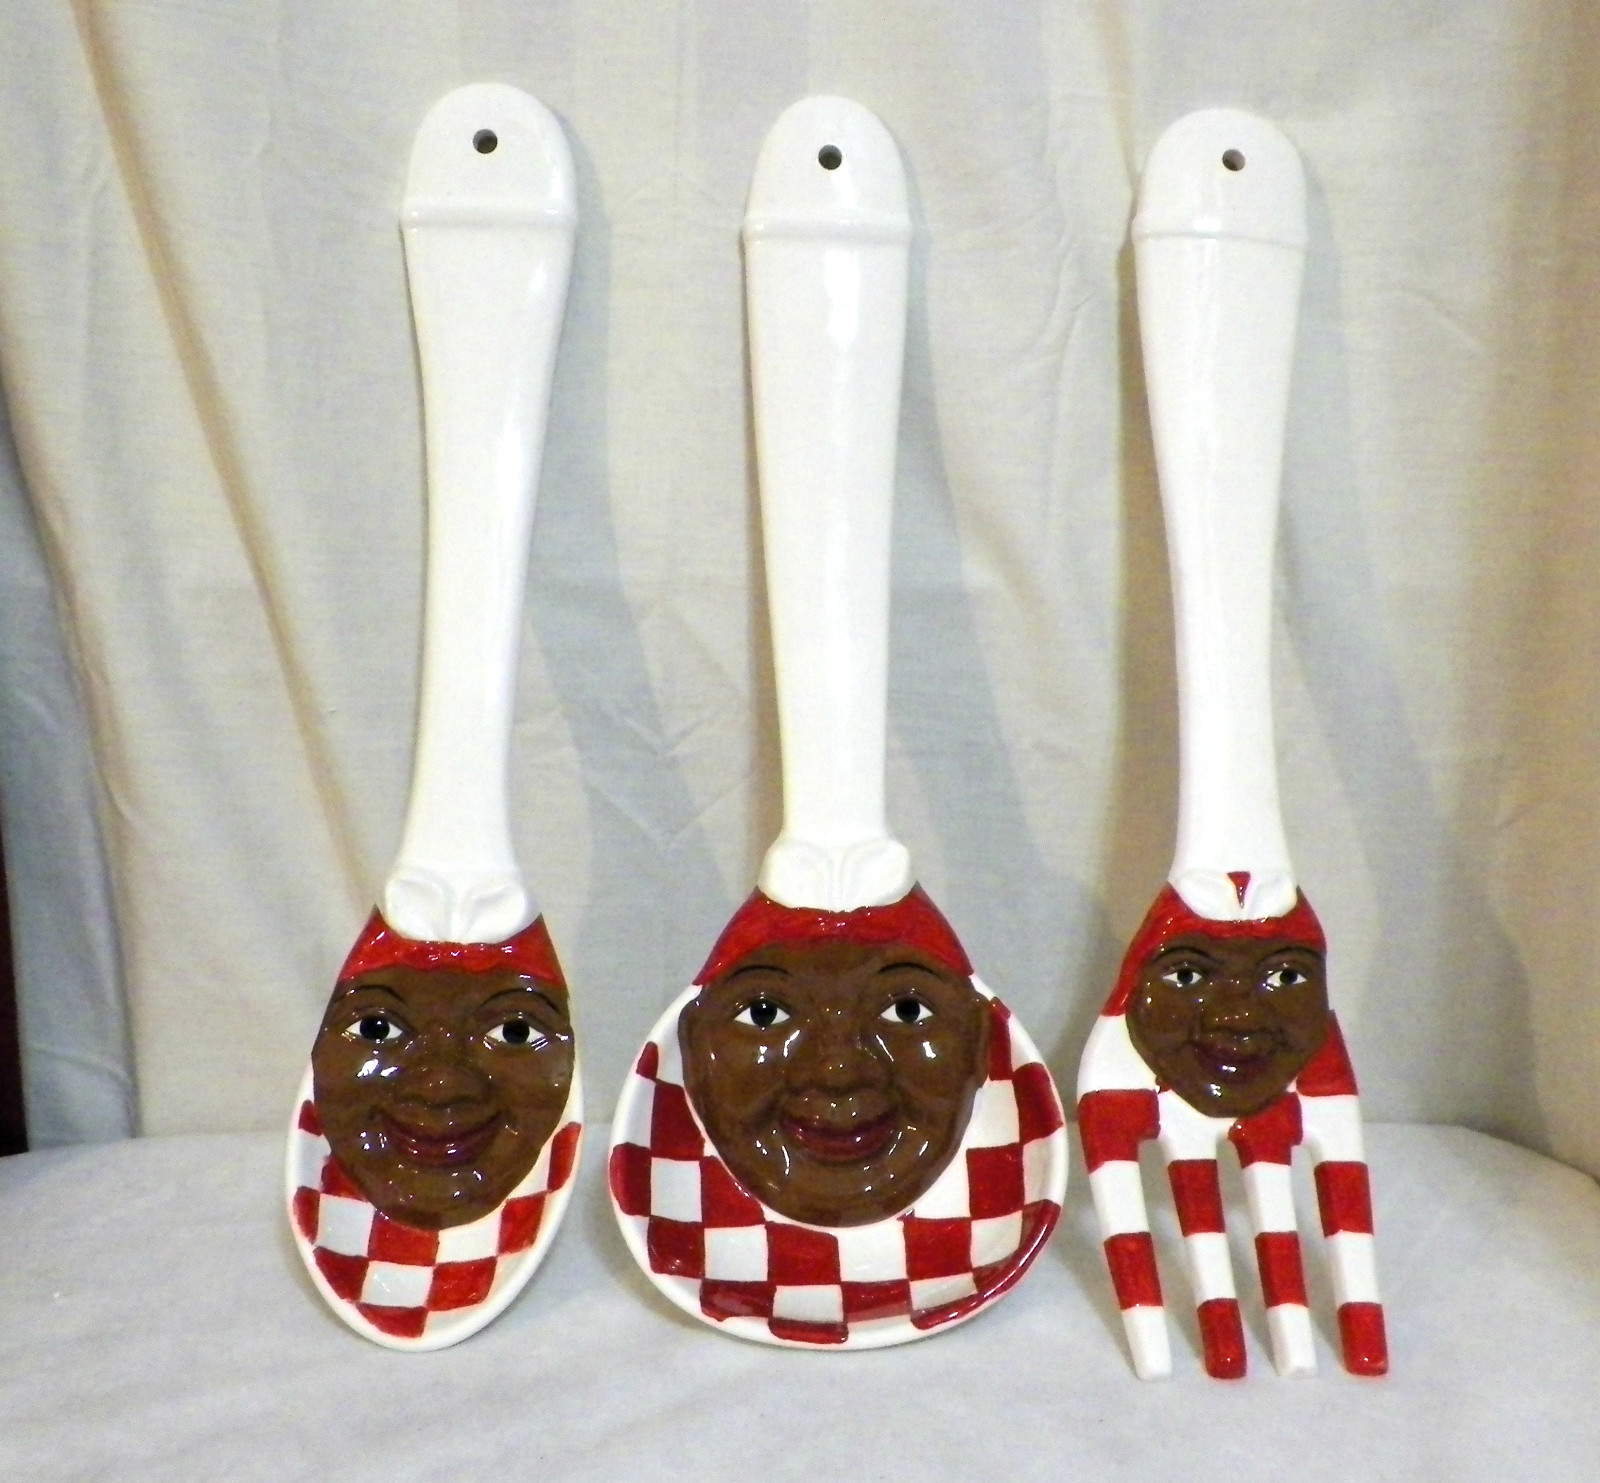 Spoon Aunt Jemima Kitchen Decor (View 5 of 10)